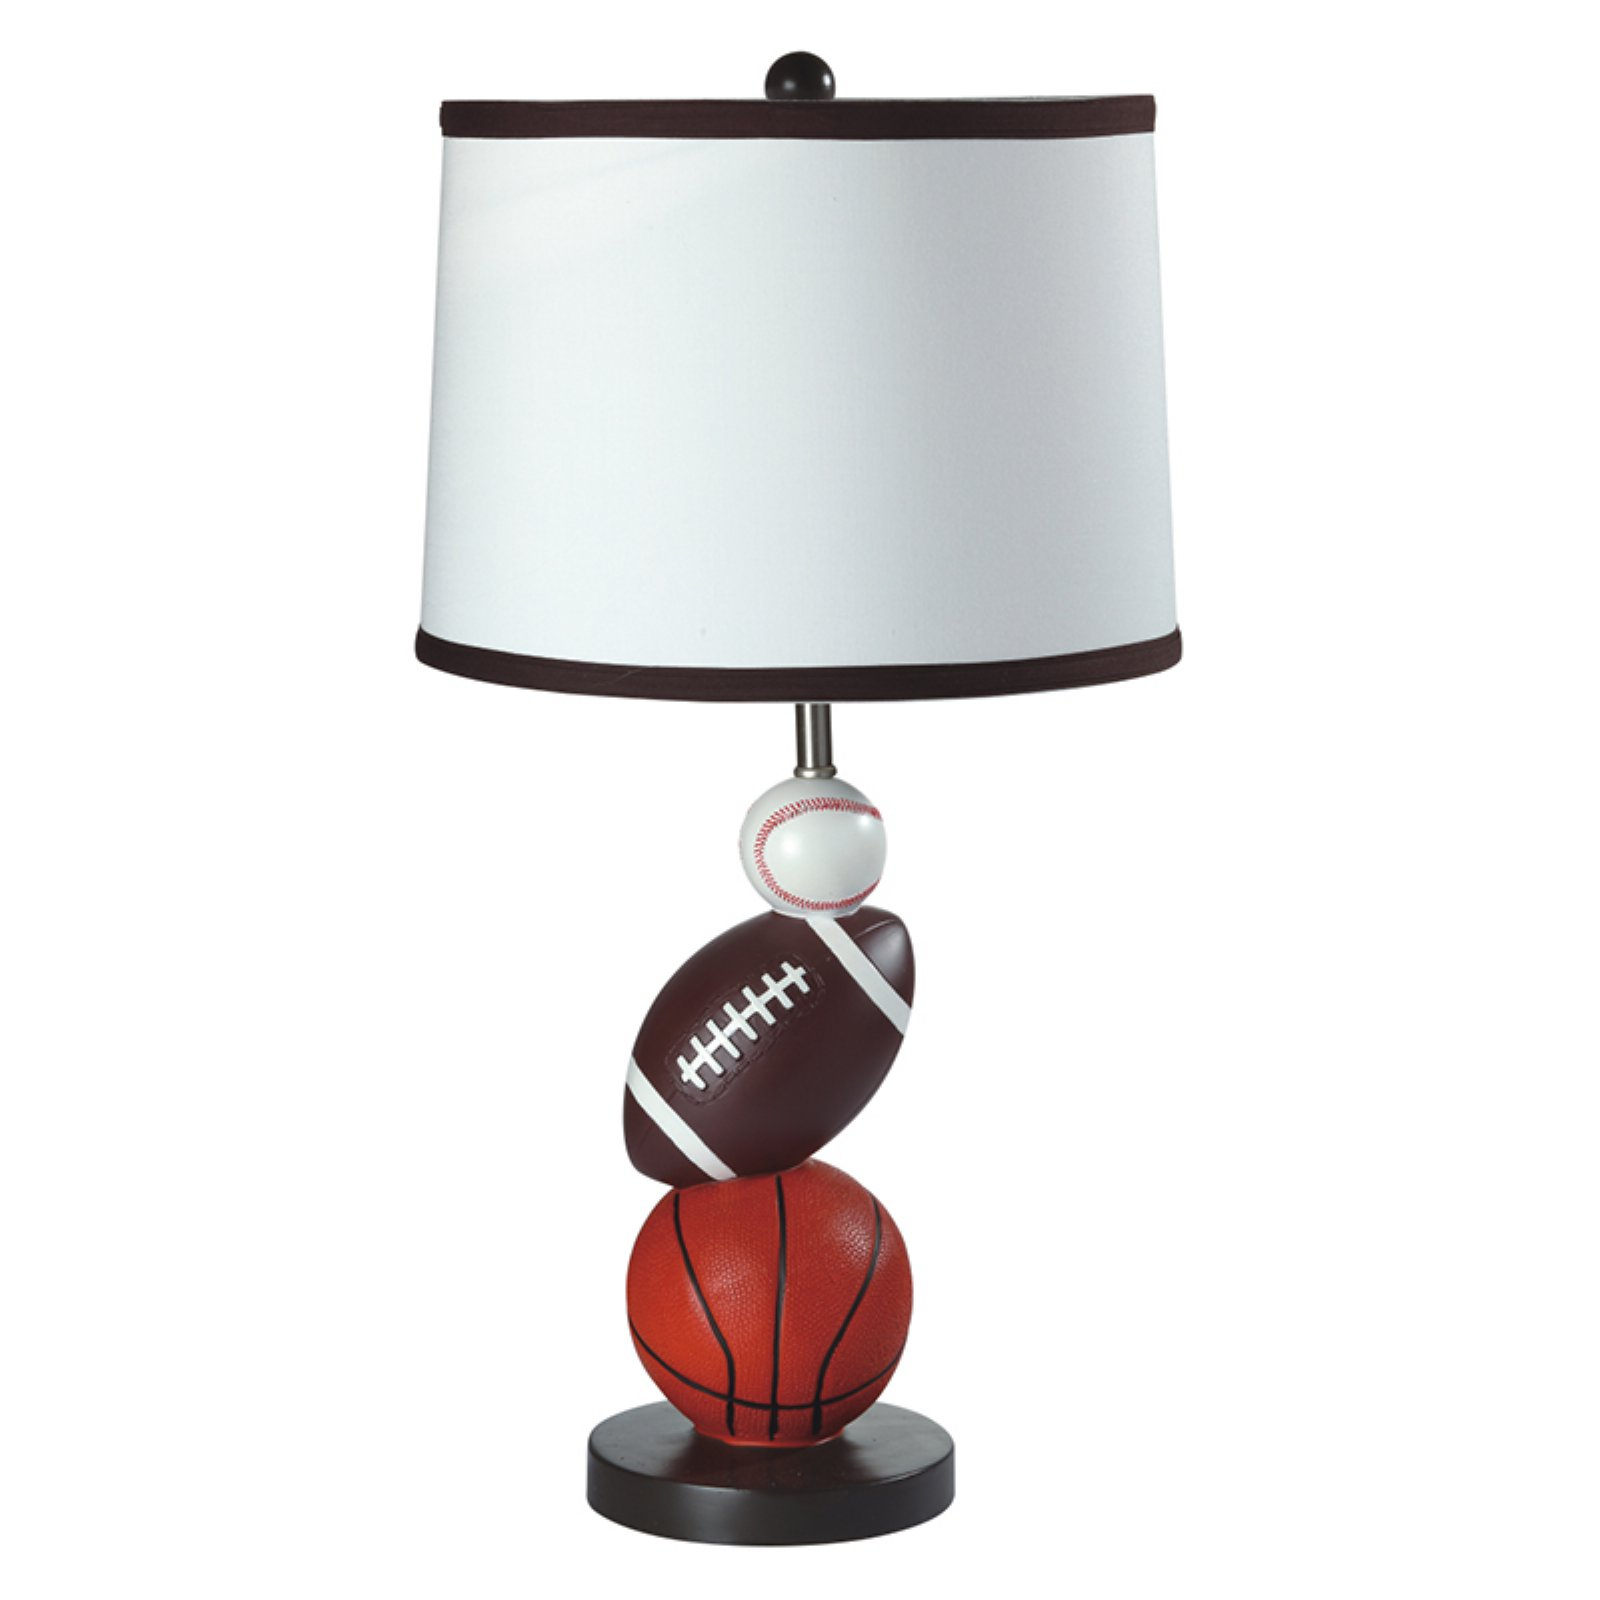 Charmant Milton Greens Youth Sports Table Lamp